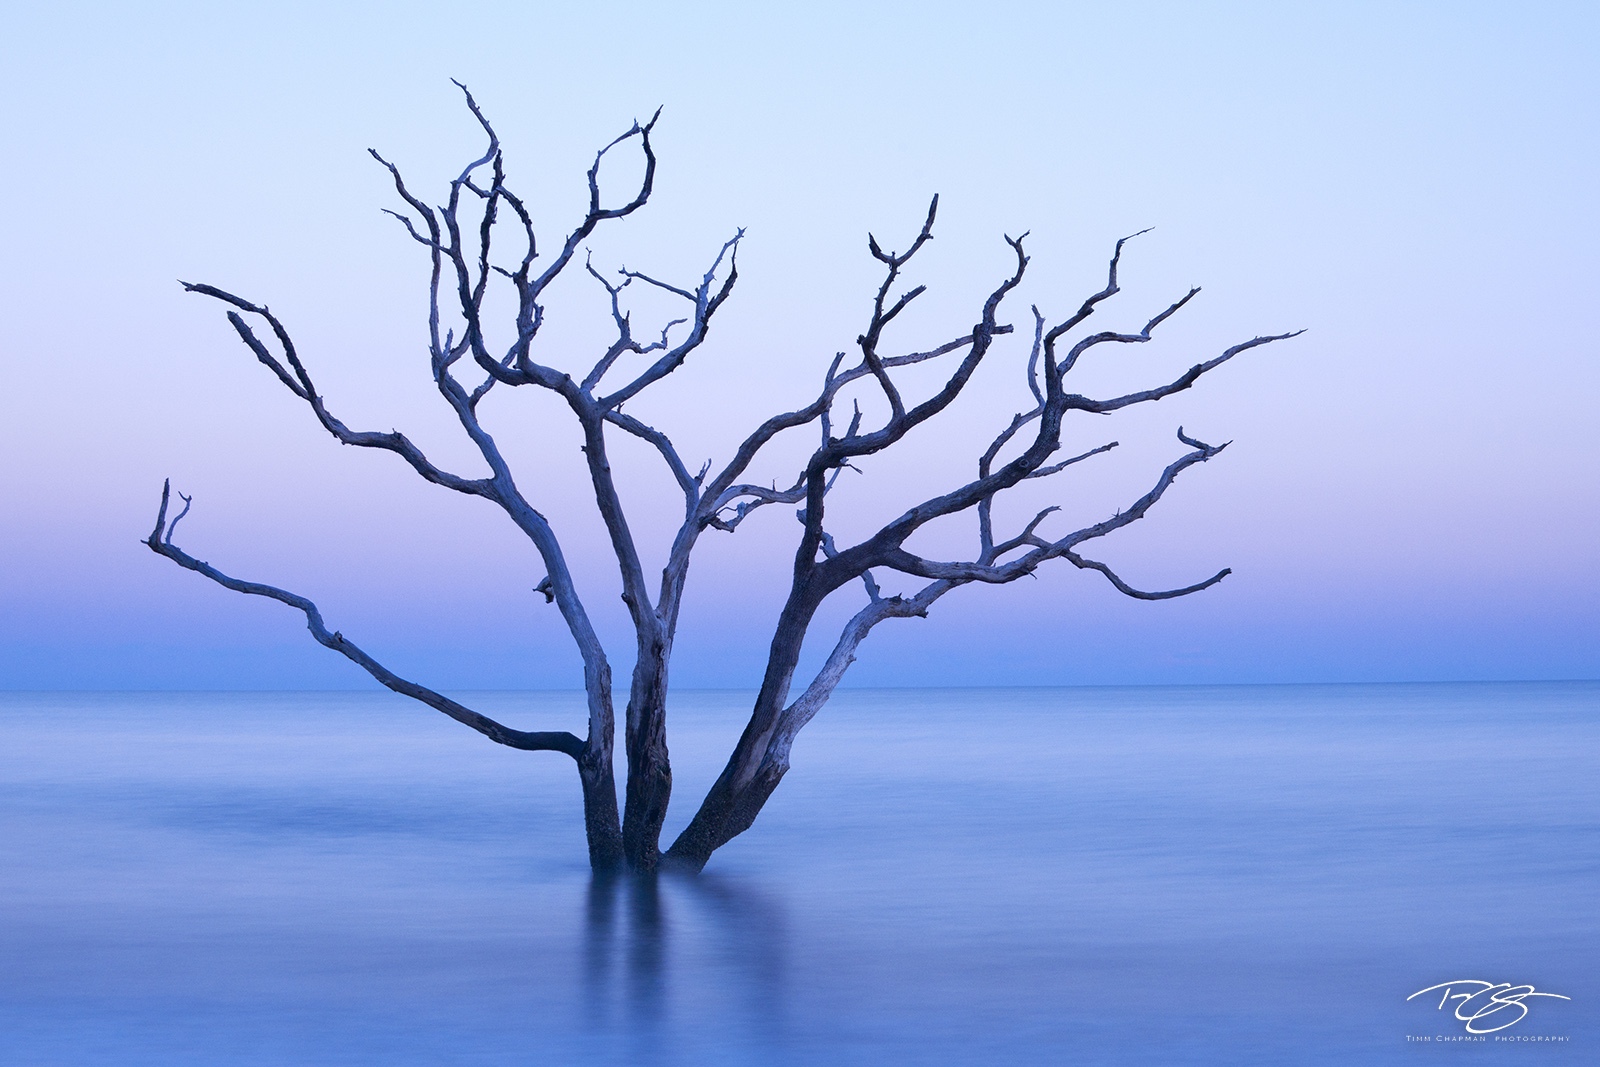 South Carolina, boneyard, skeleton, tree, botany bay, edisto island, dead tree, eventide, water, coast, surf, ocean, dusk, sunset, pastel, pink, blue, purple, peace, peaceful, calming, zen, yoga, silh, photo